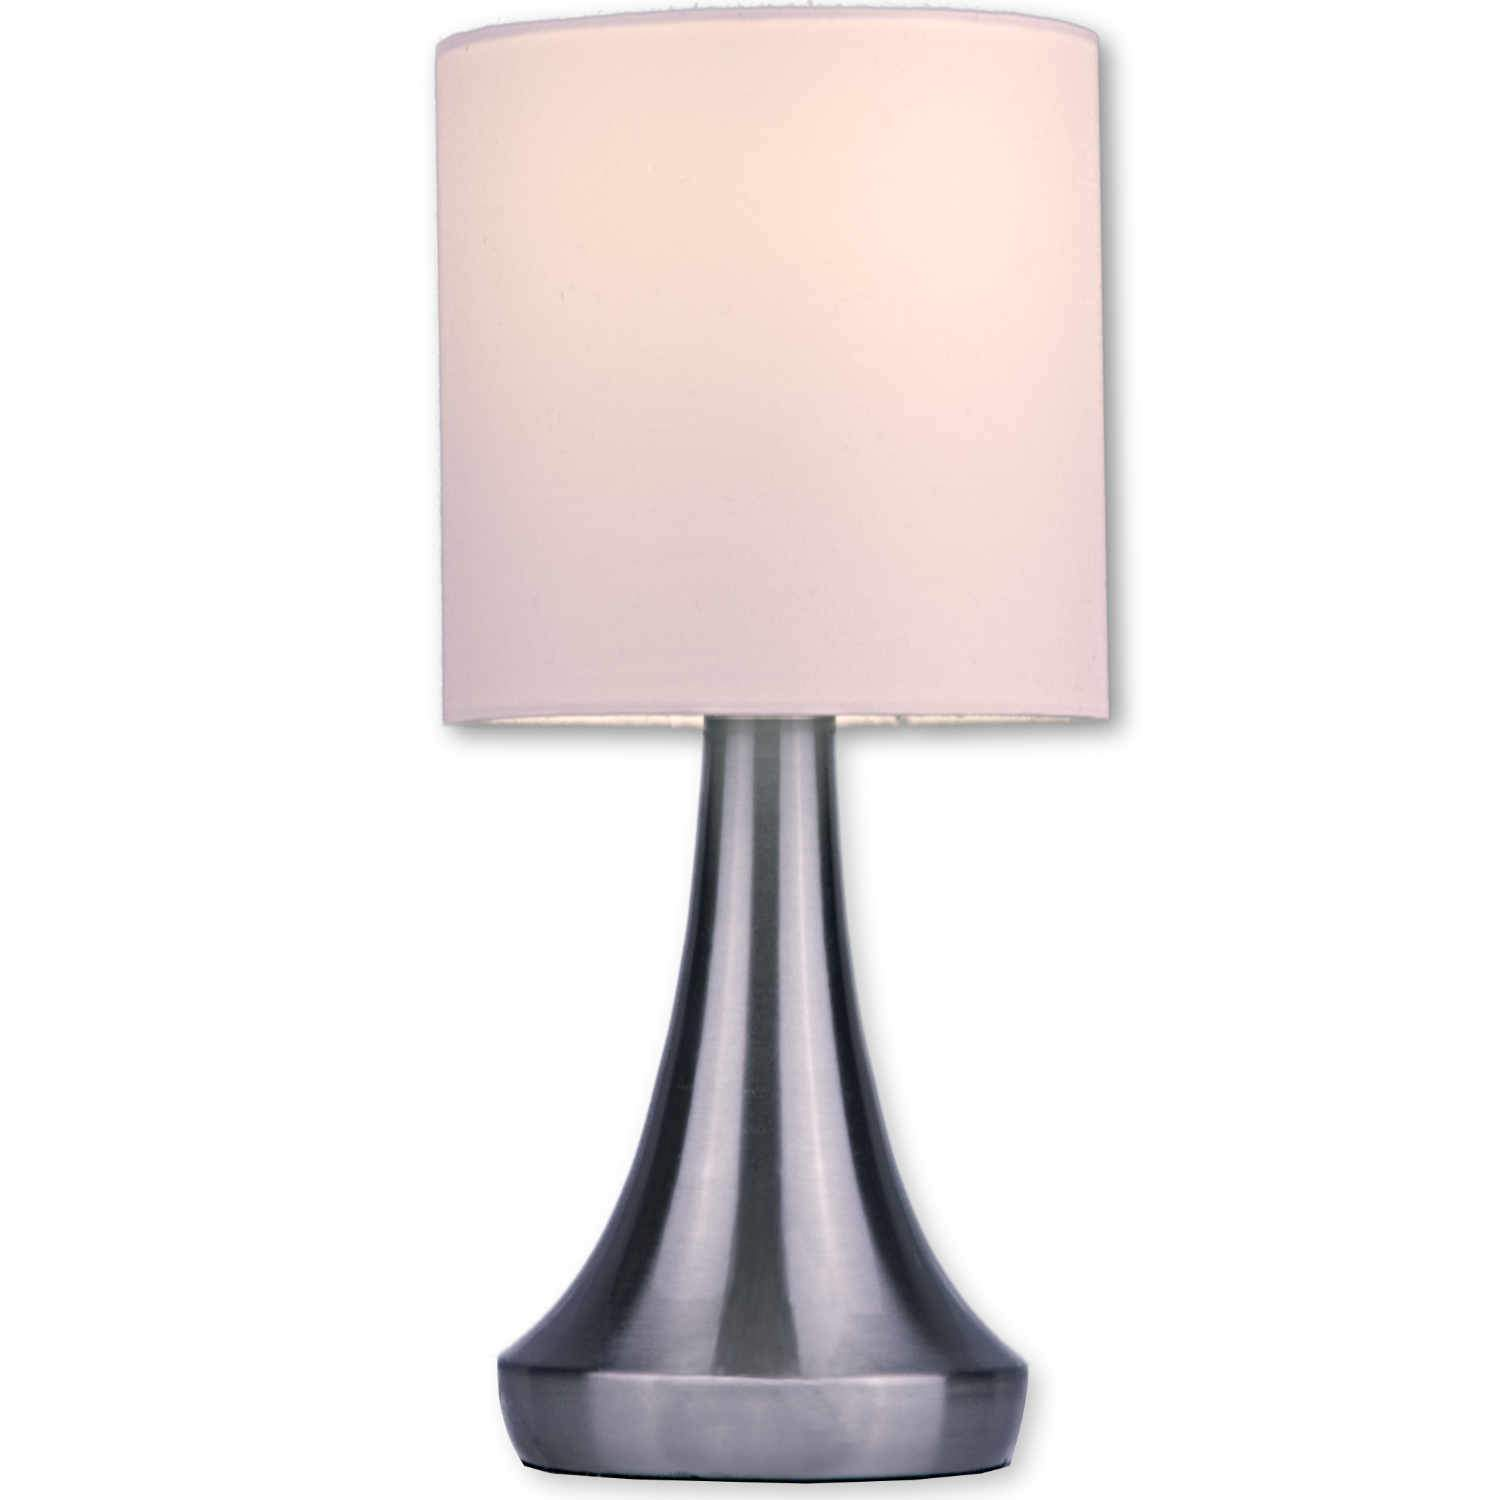 nightstand lamp with dimmer desk light accents touch table lamp modern 13